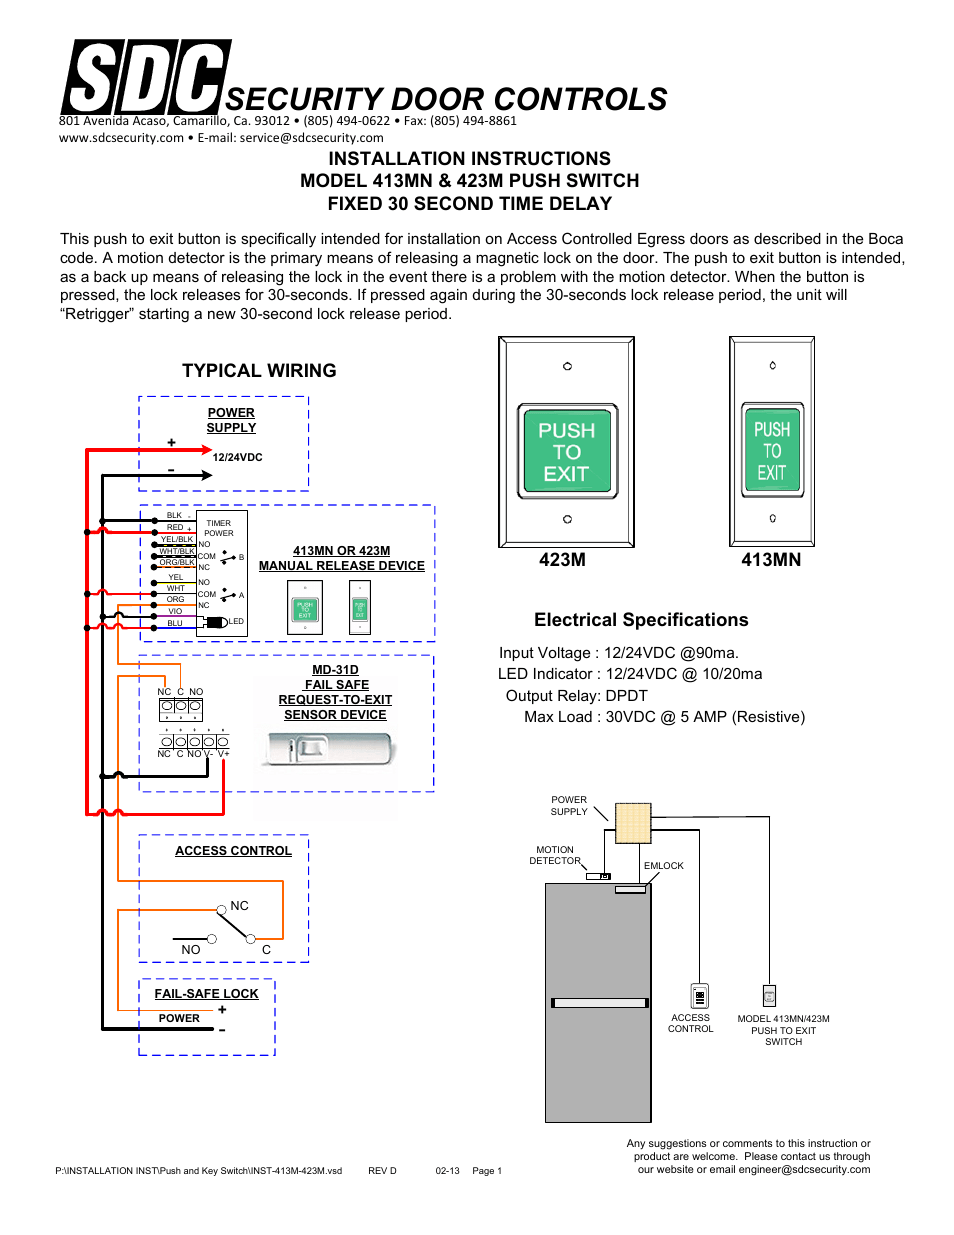 hight resolution of security door controls typical wiring electrical specifications sdc 420 series push switch user manual page 4 7